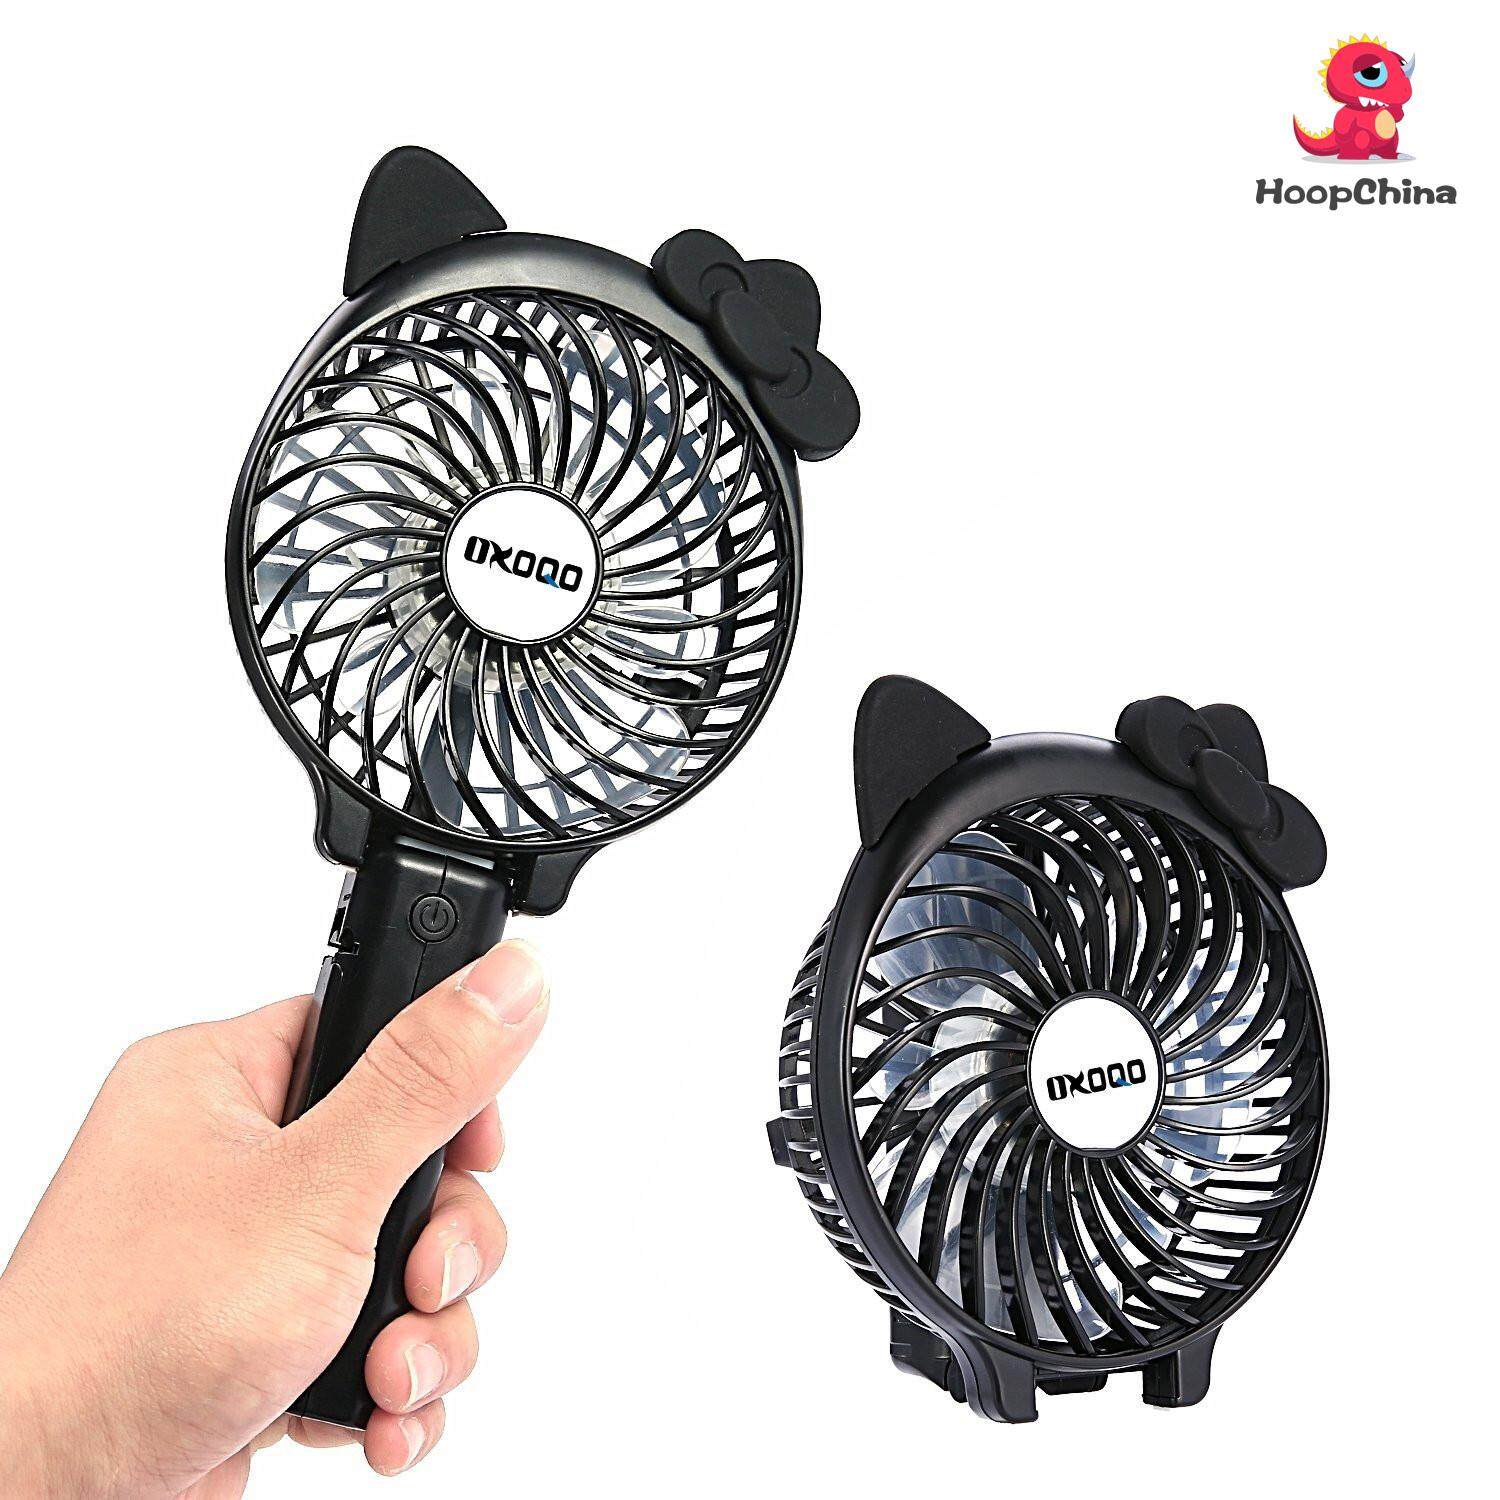 Latest Branded Fans With Best Online Price In Malaysia Mini Portable Fan Powerbank Kipas Angin Hoopchina Folding Personal Handheld Equipped 3 Kinds Of Strong